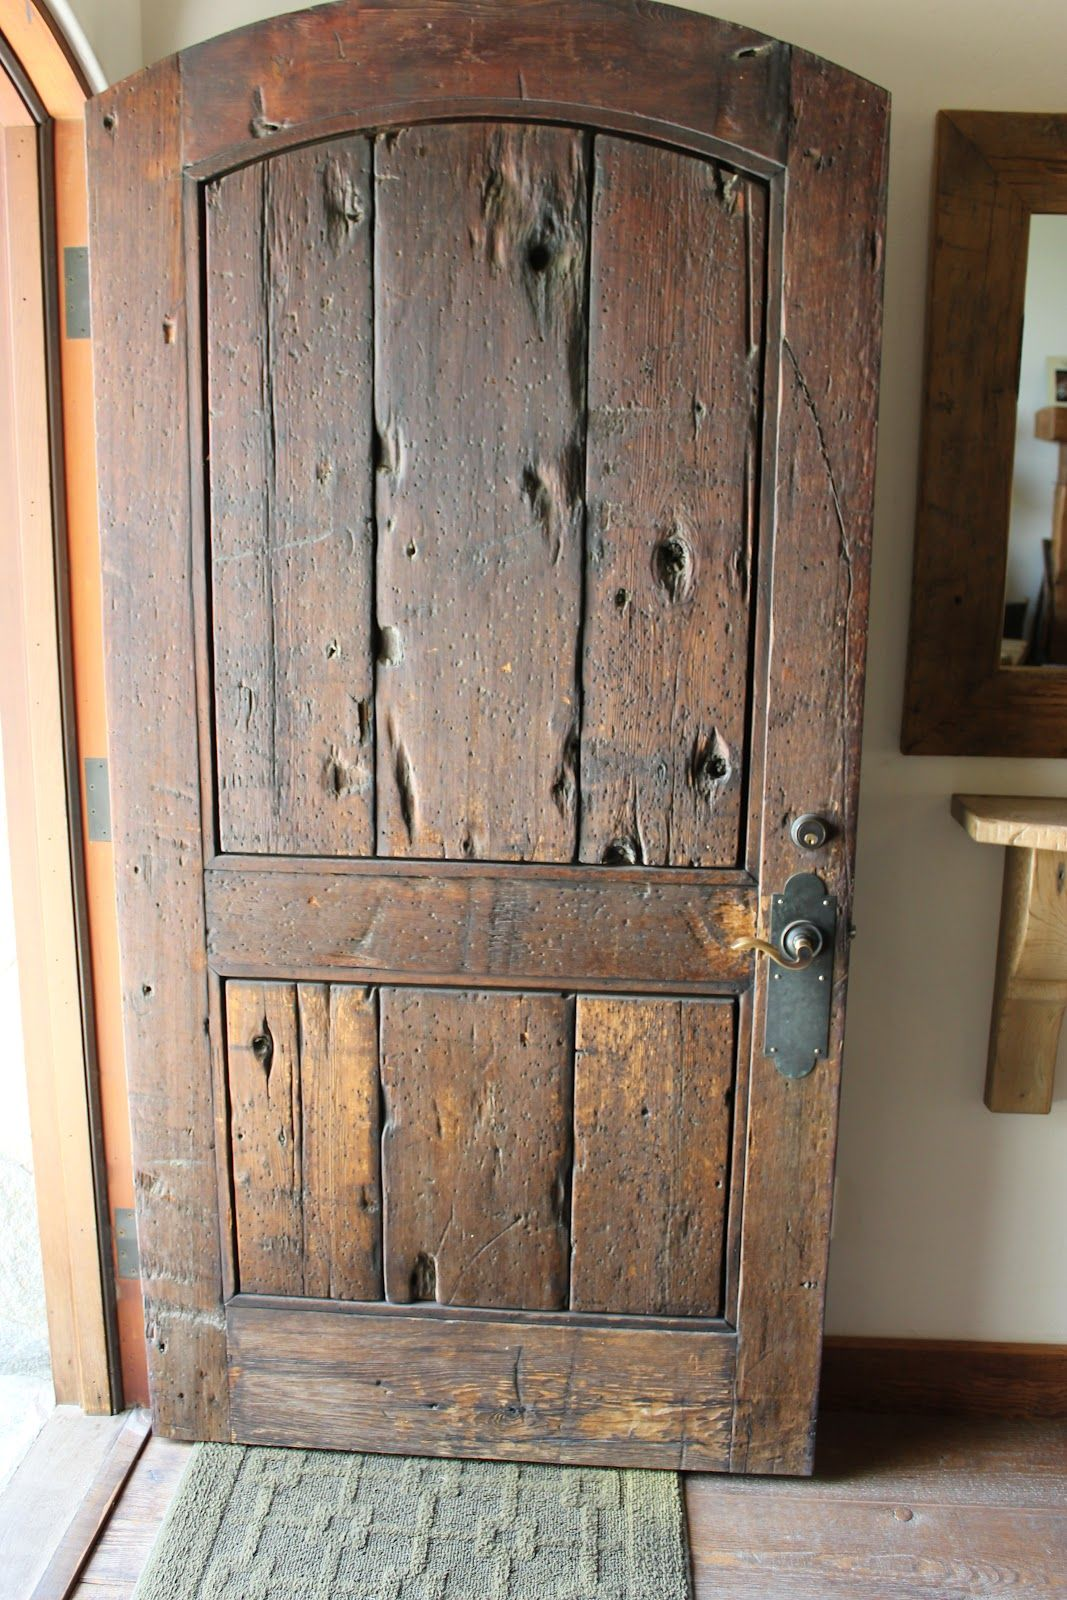 1600 #995932 Rustic Front Doors On Pinterest wallpaper European Front Doors 46251067